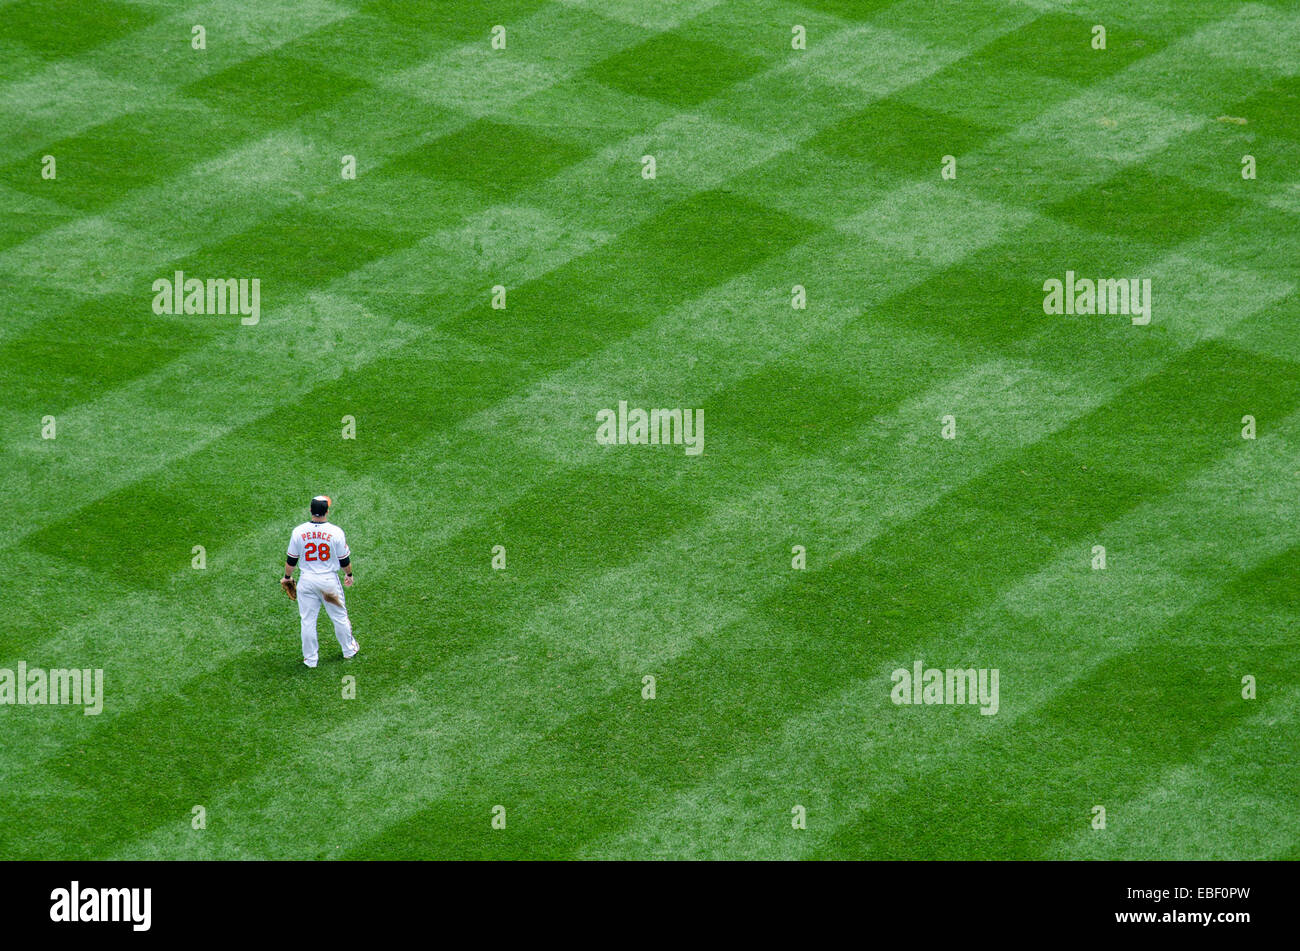 In the outfields at Camden Yards - Stock Image